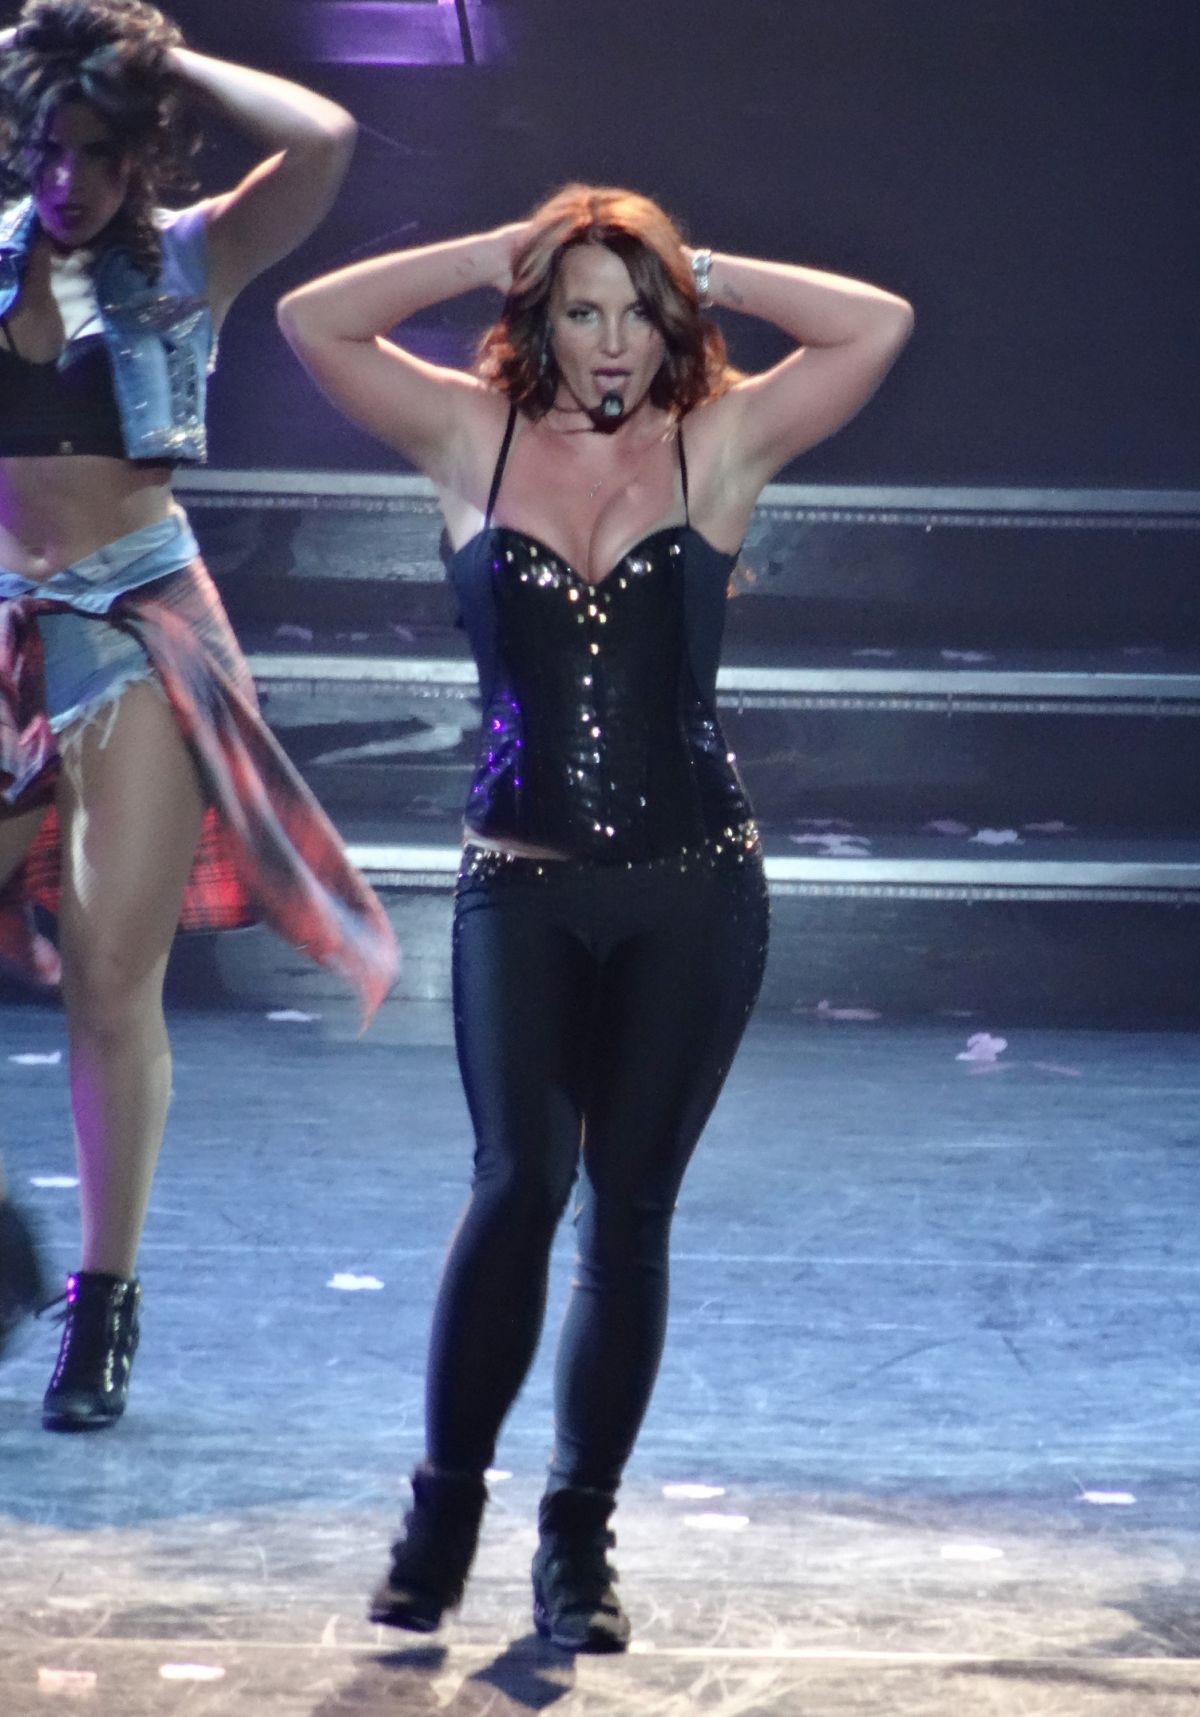 BRITNEY SPEARS Performs Live in Las Vegas - HawtCelebs ... Britney Spears Las Vegas